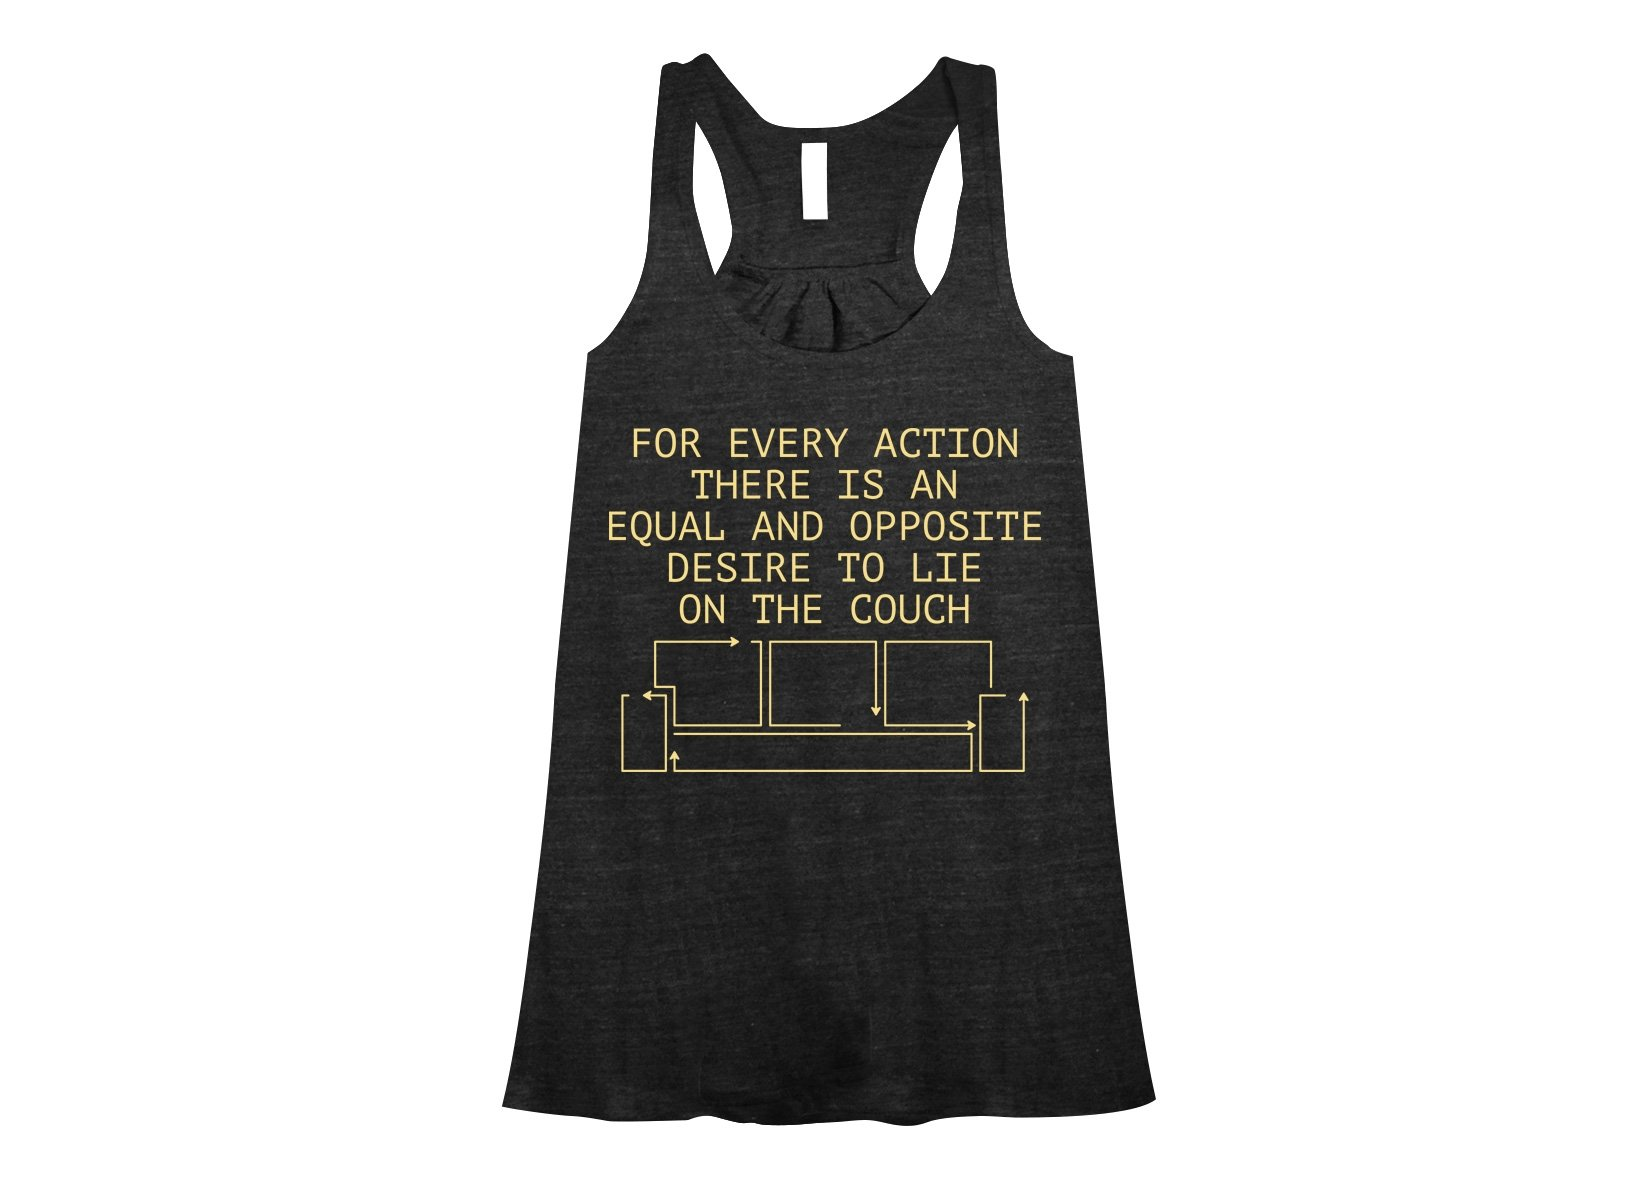 For Every Action There Is An Equal And Opposite Desire To Lie On The Couch on Womens Tanks T-Shirt